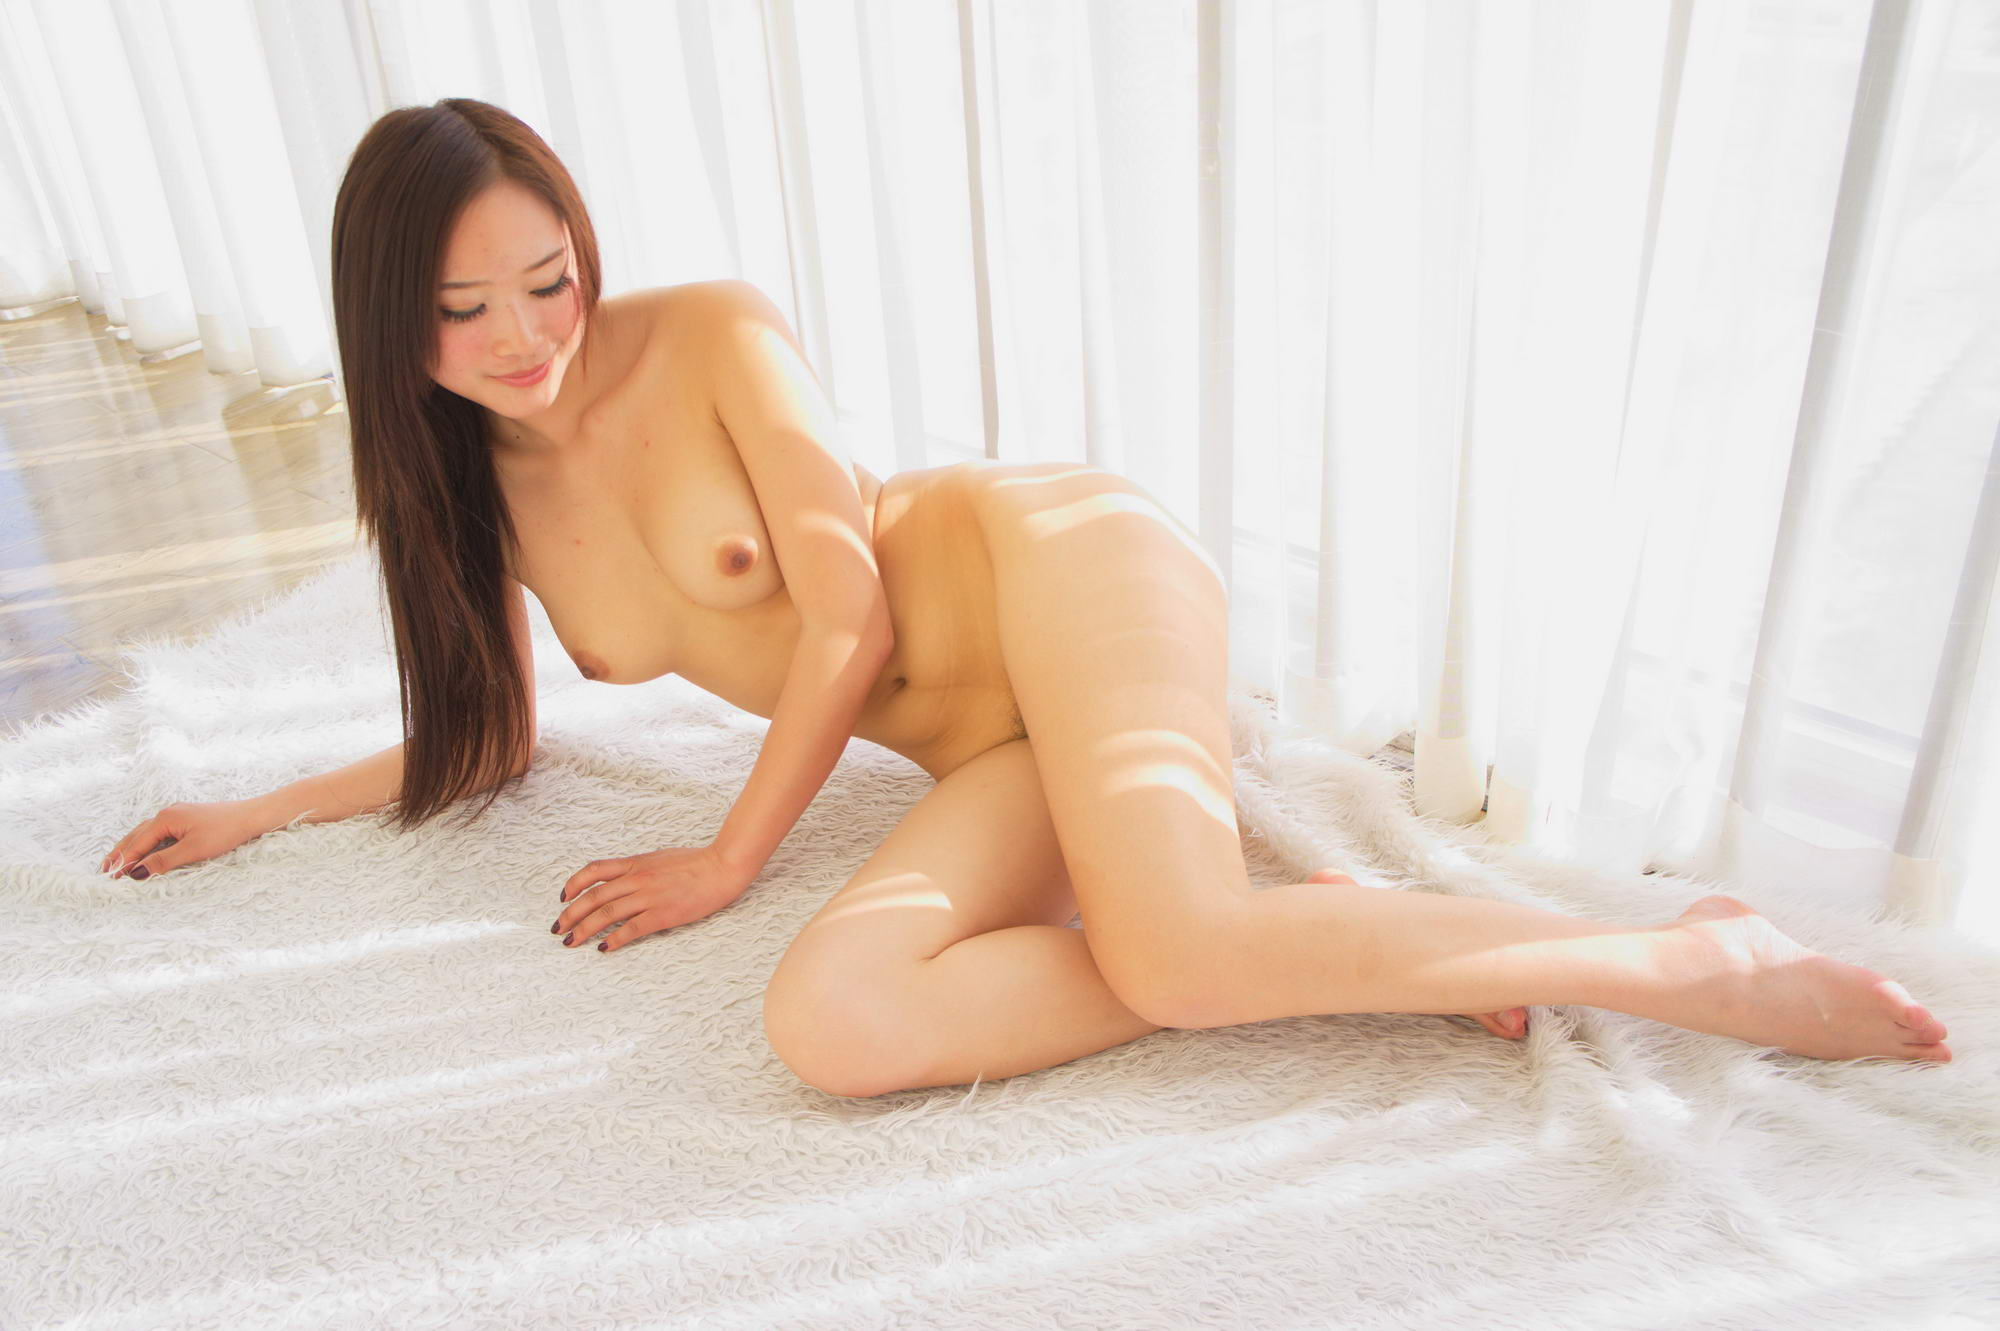 Pretty chinese nude model chen xiaodong sex with photographer 10